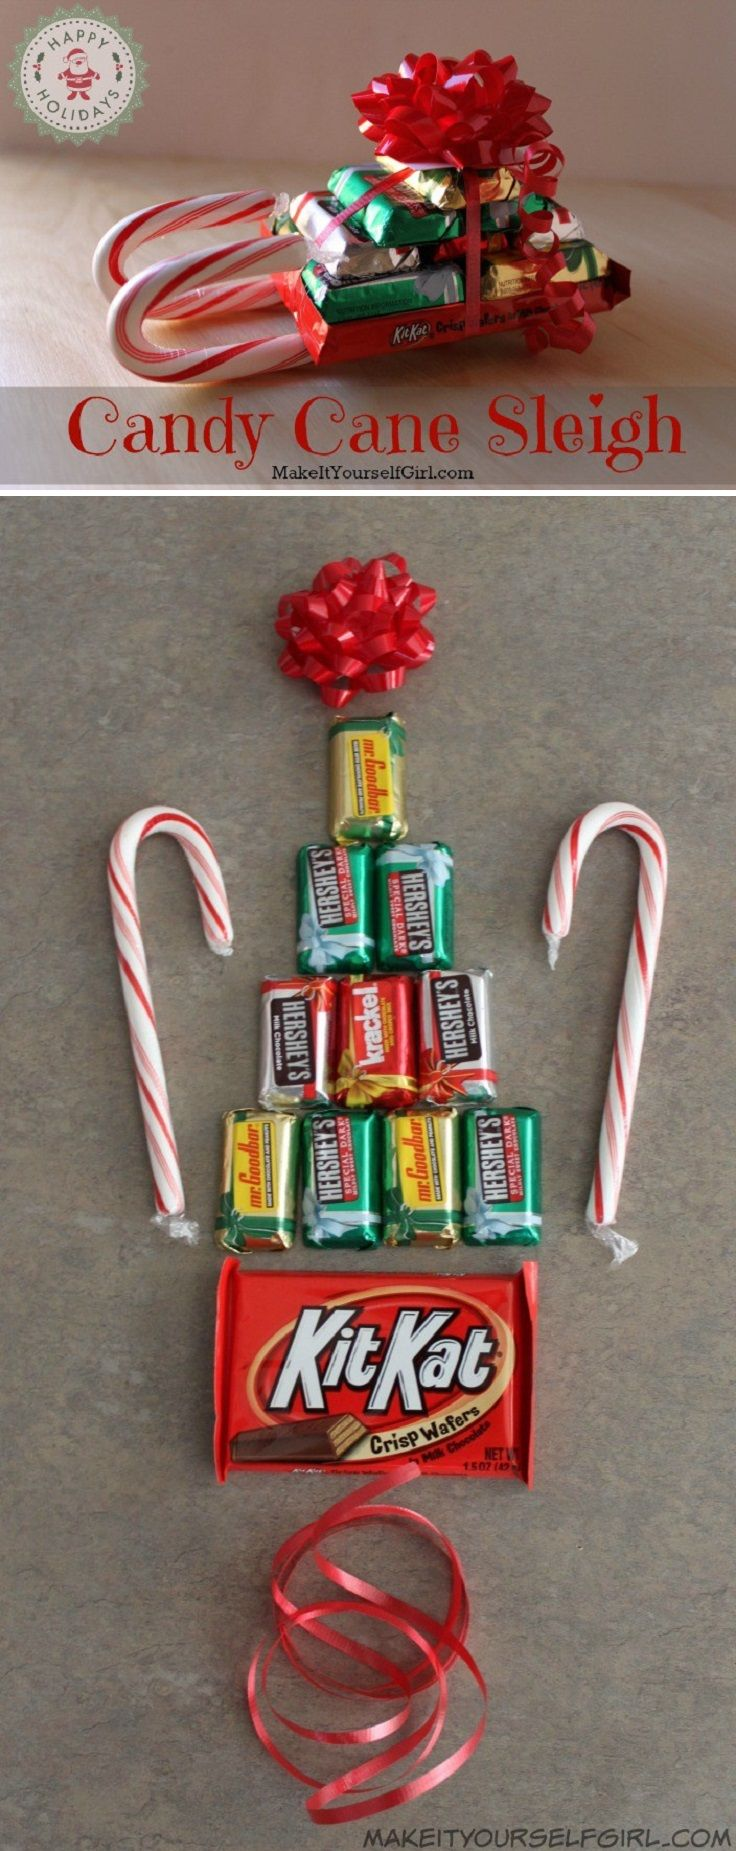 simple diy candy cane sleigh 12 wondrous diy candy cane sleigh ideas that will leave your kids open mouthed - Christmas Candy Crafts